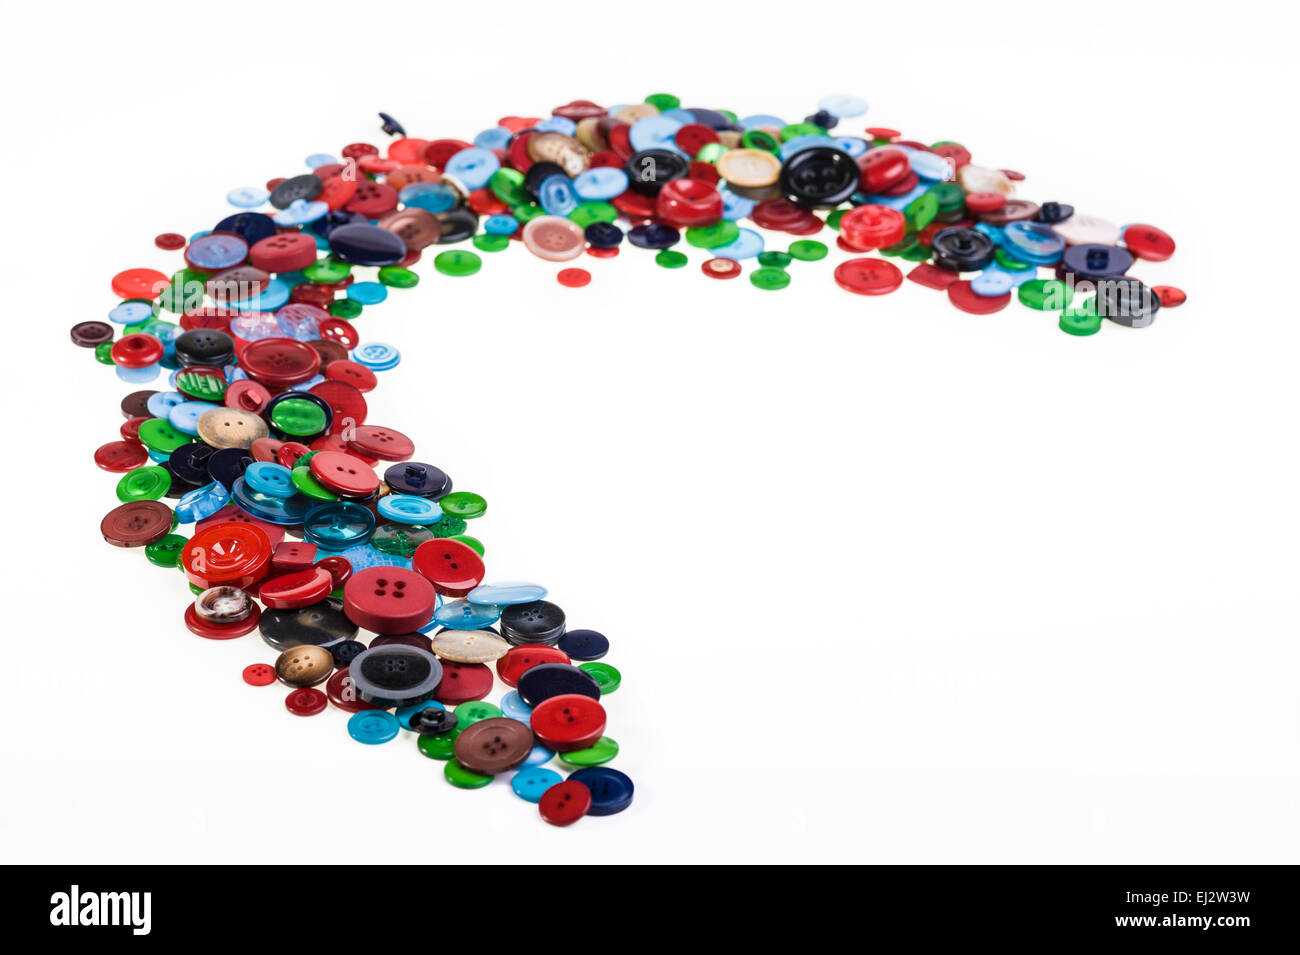 Buttons formed into a shape of a curve. - Stock Image